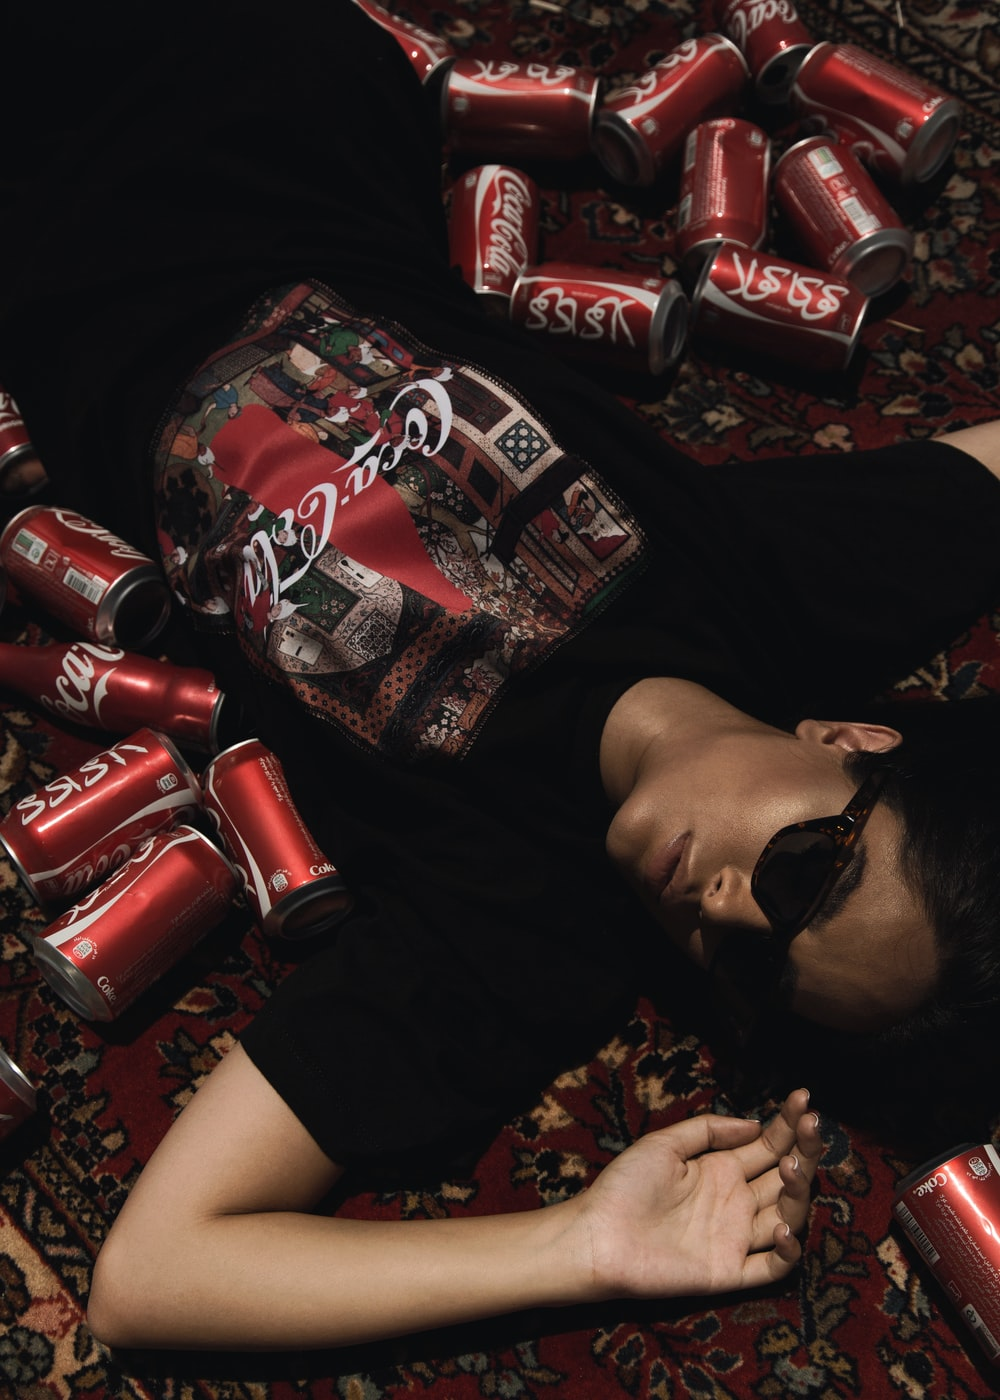 person lying on floor near Coca-Cola cans